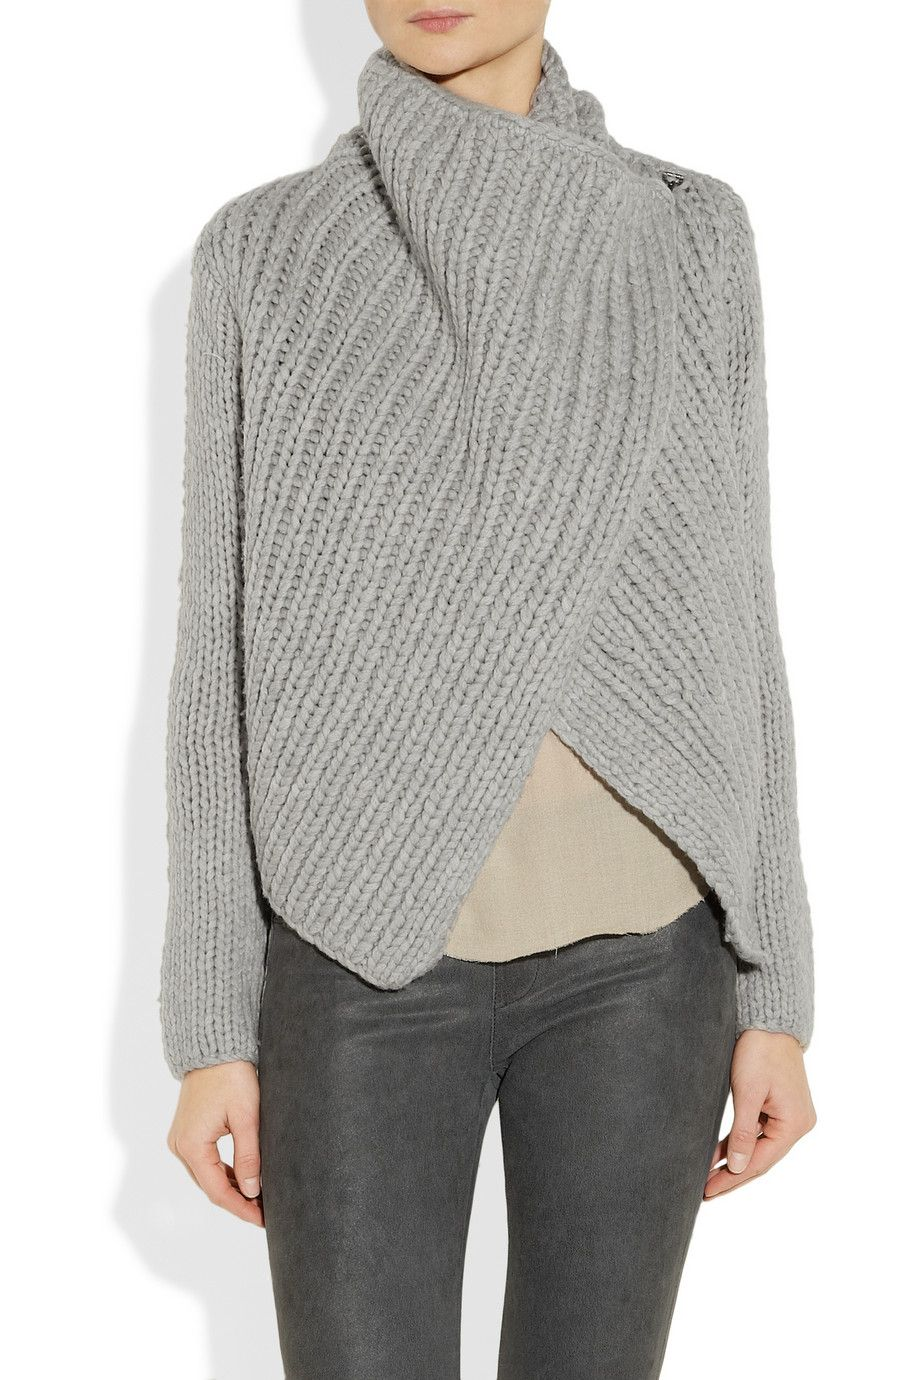 Helmut Lang Bulky rib knit sweater ~ love the easy wrap style! No ...